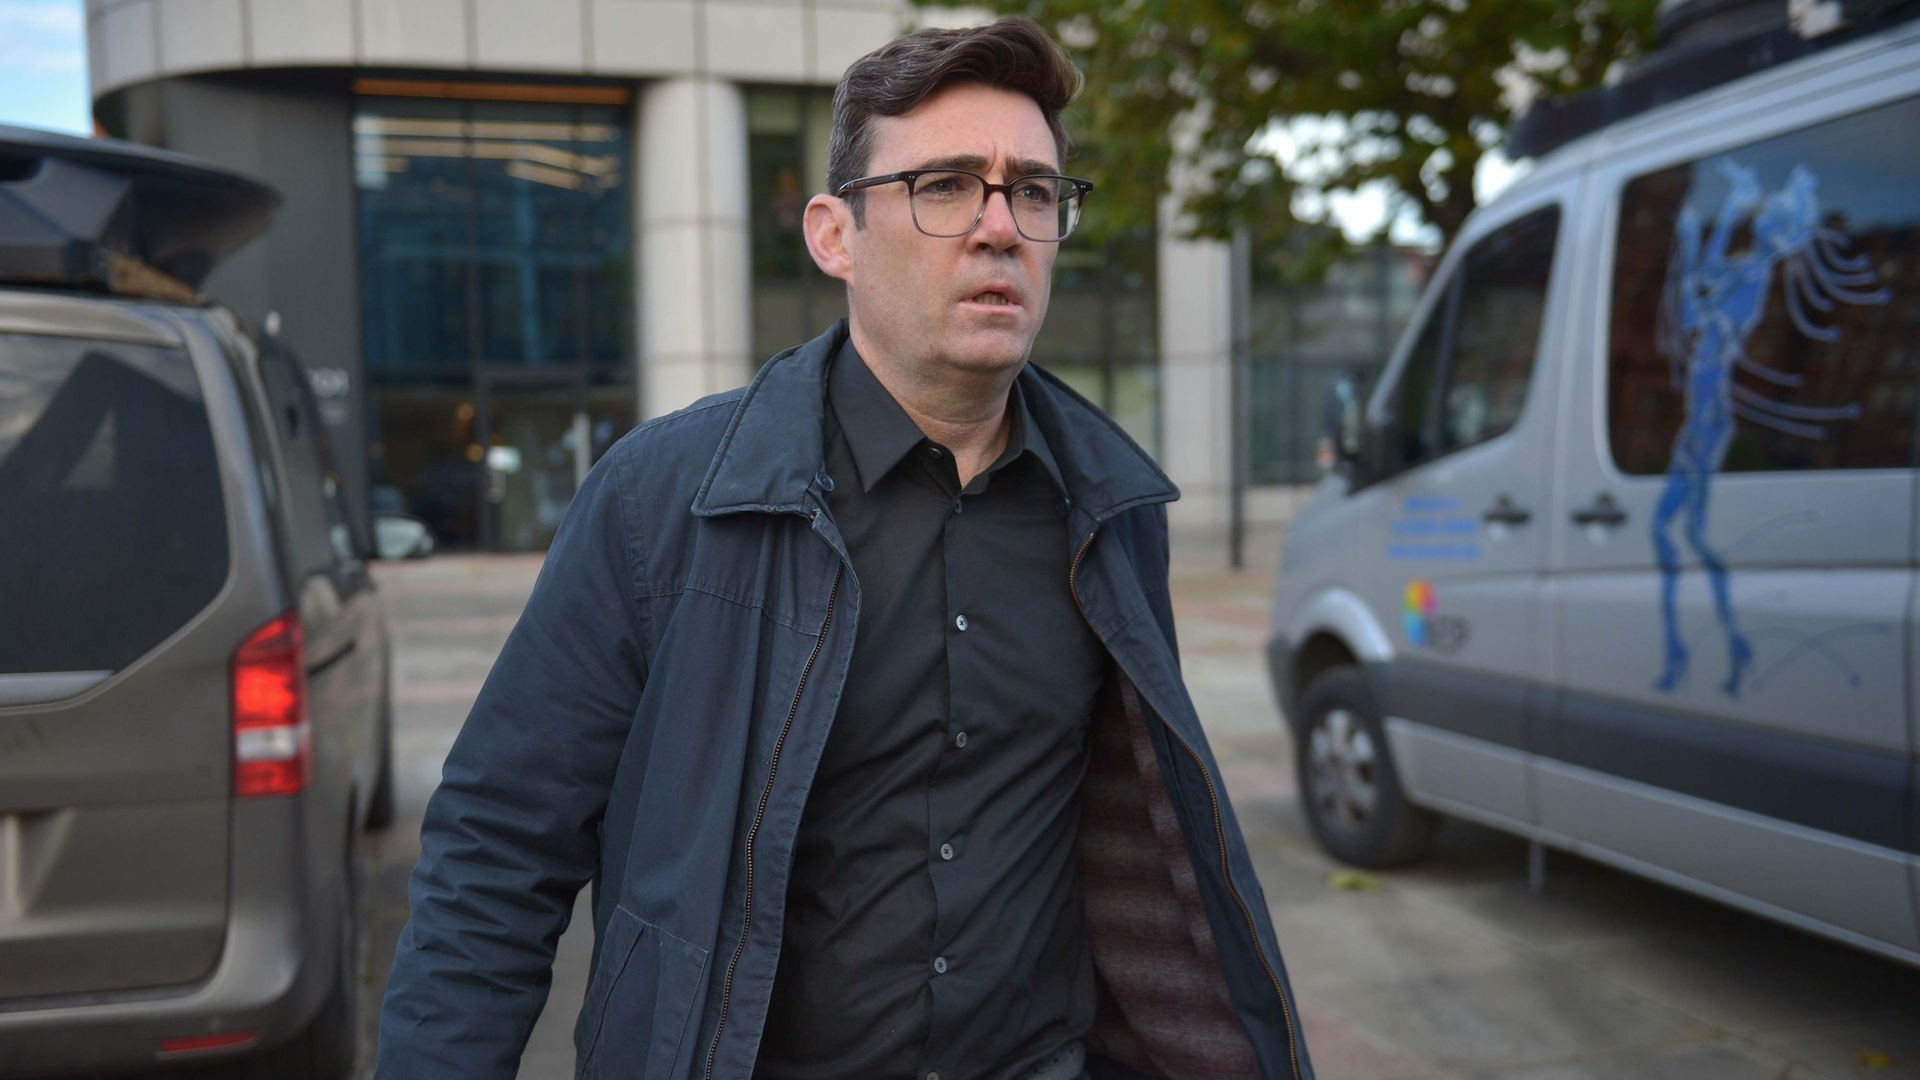 Downing Street strategists suggest Andy Burnham (pictured above) could be leading the Labour Party into the next election in 2024 - Credit: PA